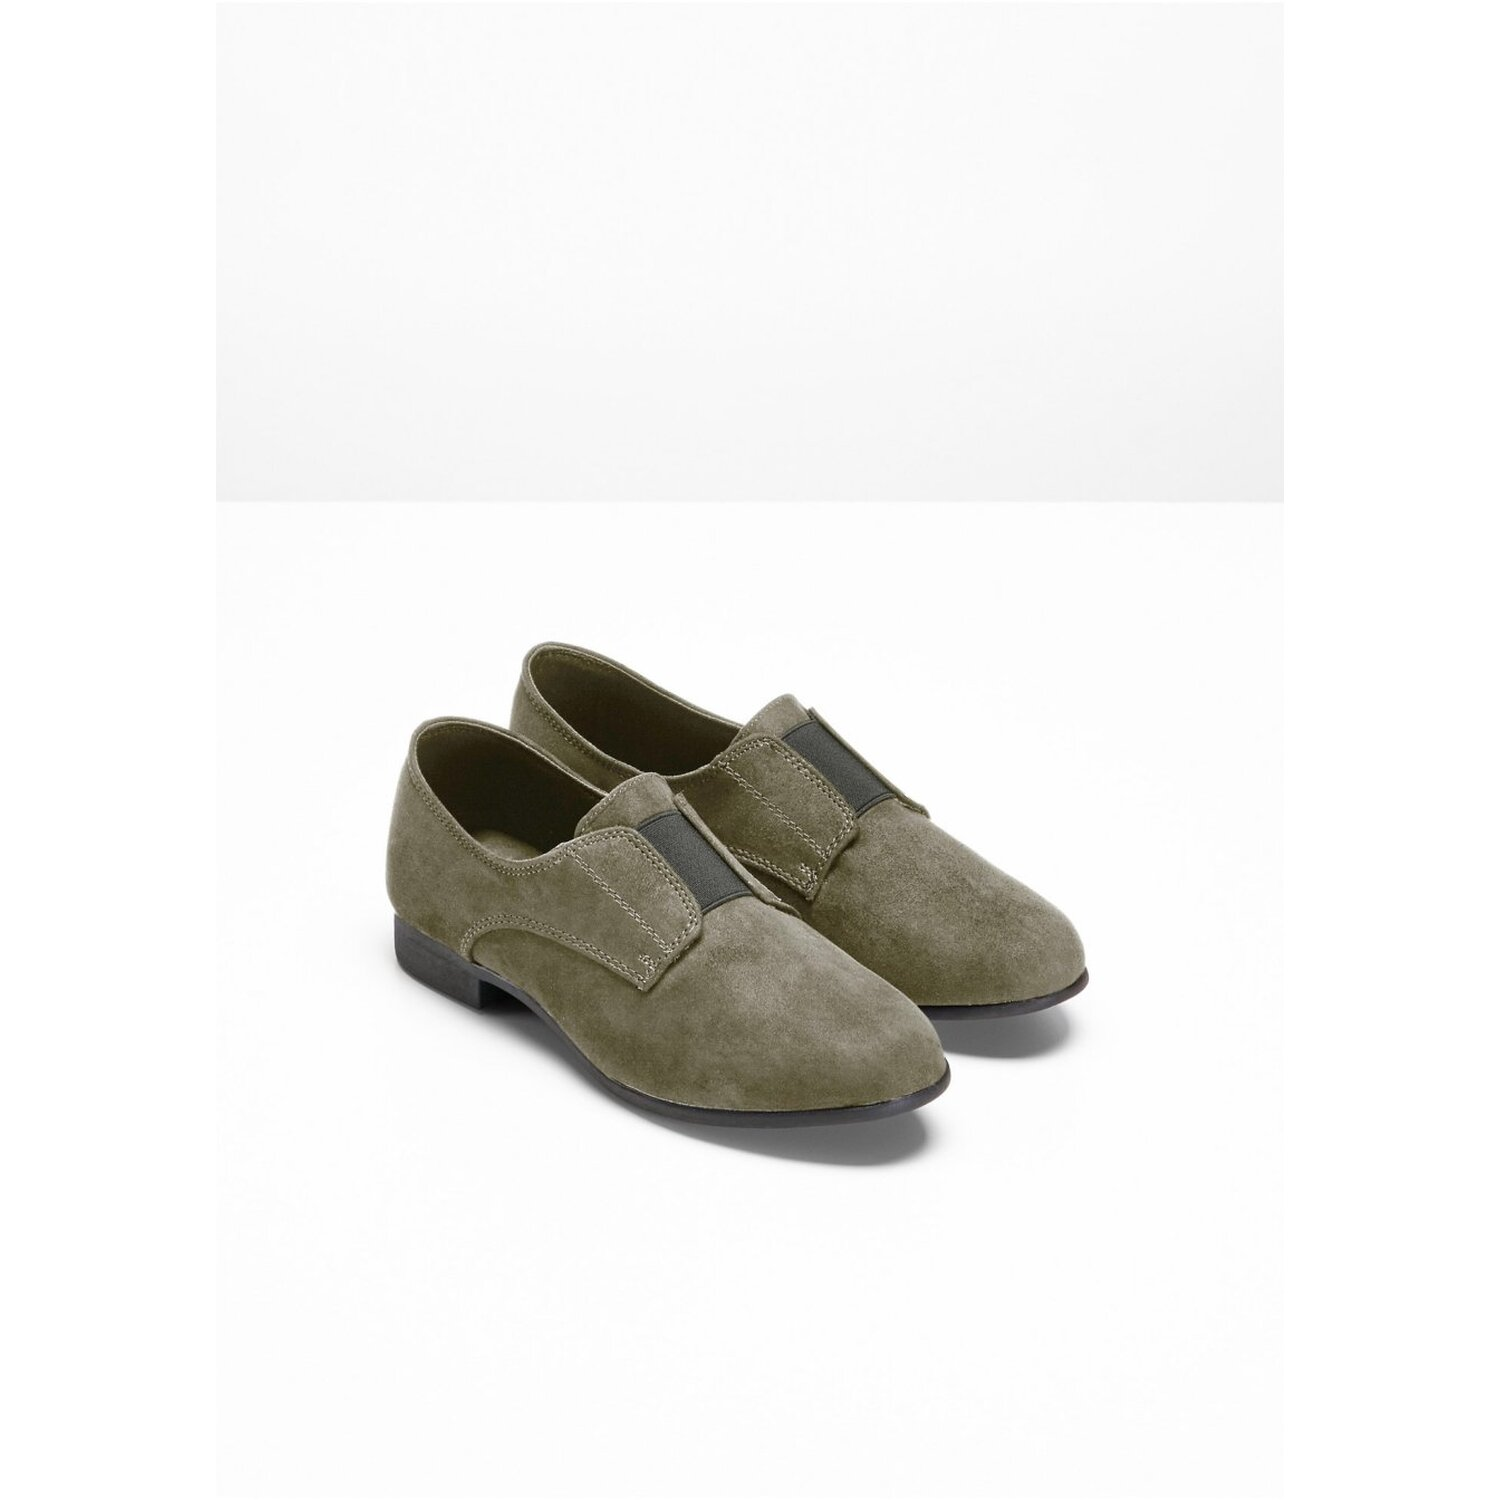 Damen Slipper, in Khaki